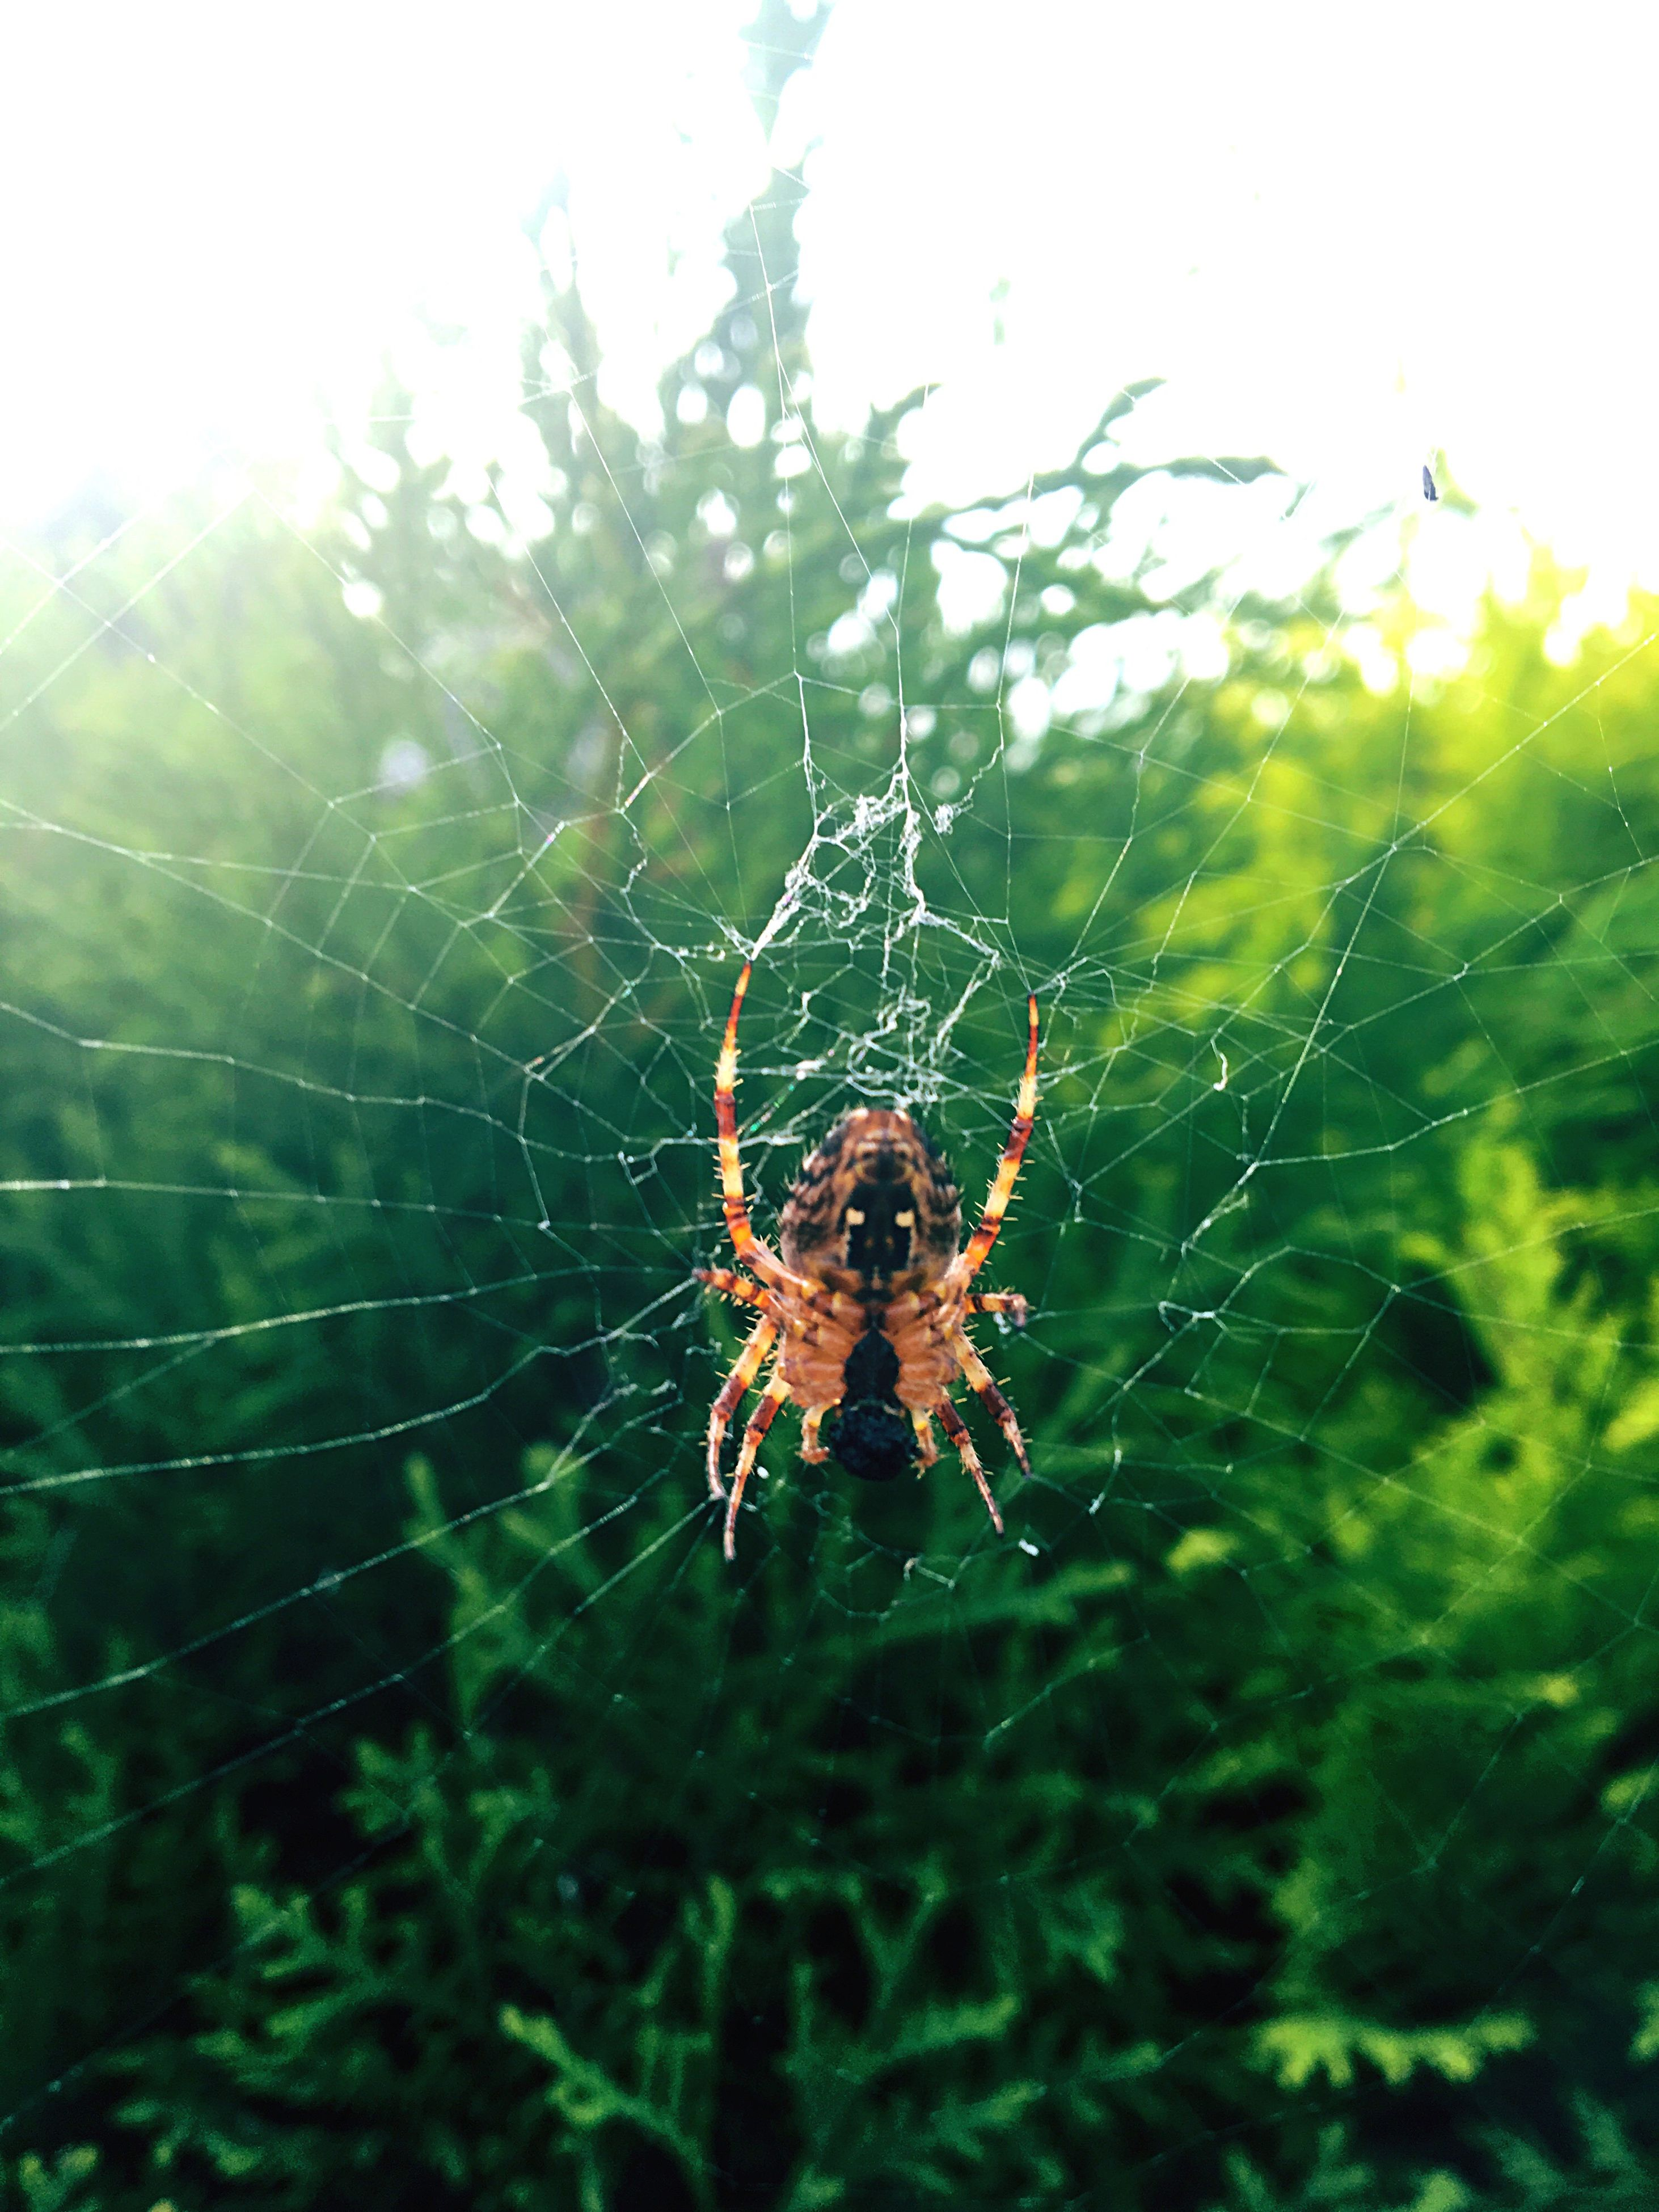 spider web, animal themes, spider, close-up, one animal, focus on foreground, animals in the wild, complexity, fragility, nature, day, zoology, intricacy, web, green color, beauty in nature, outdoors, animal markings, green, no people